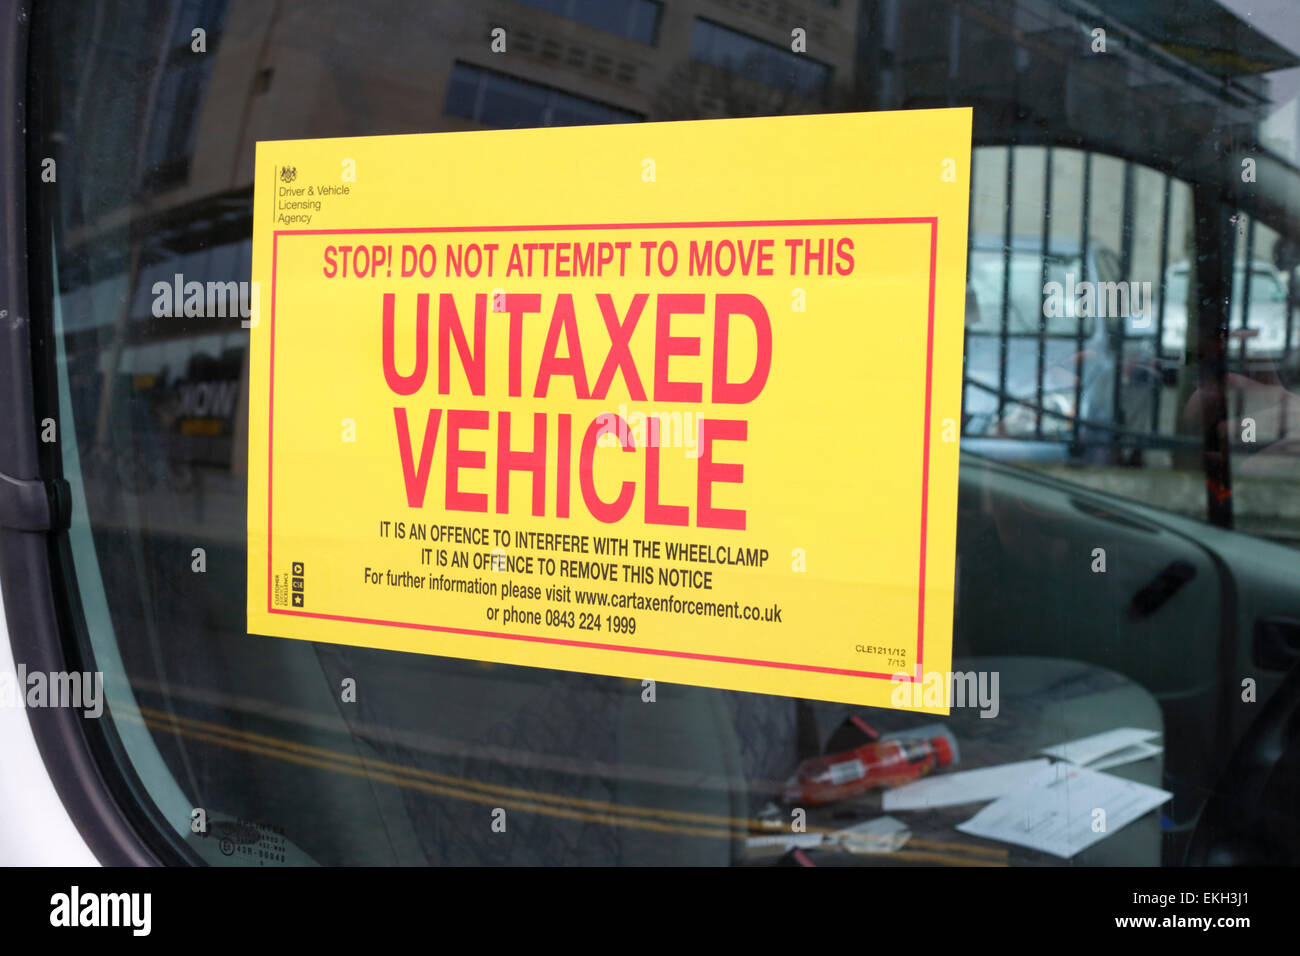 warning sticker attached to window of vehicle clamped for unpaid vehicle tax - Stock Image